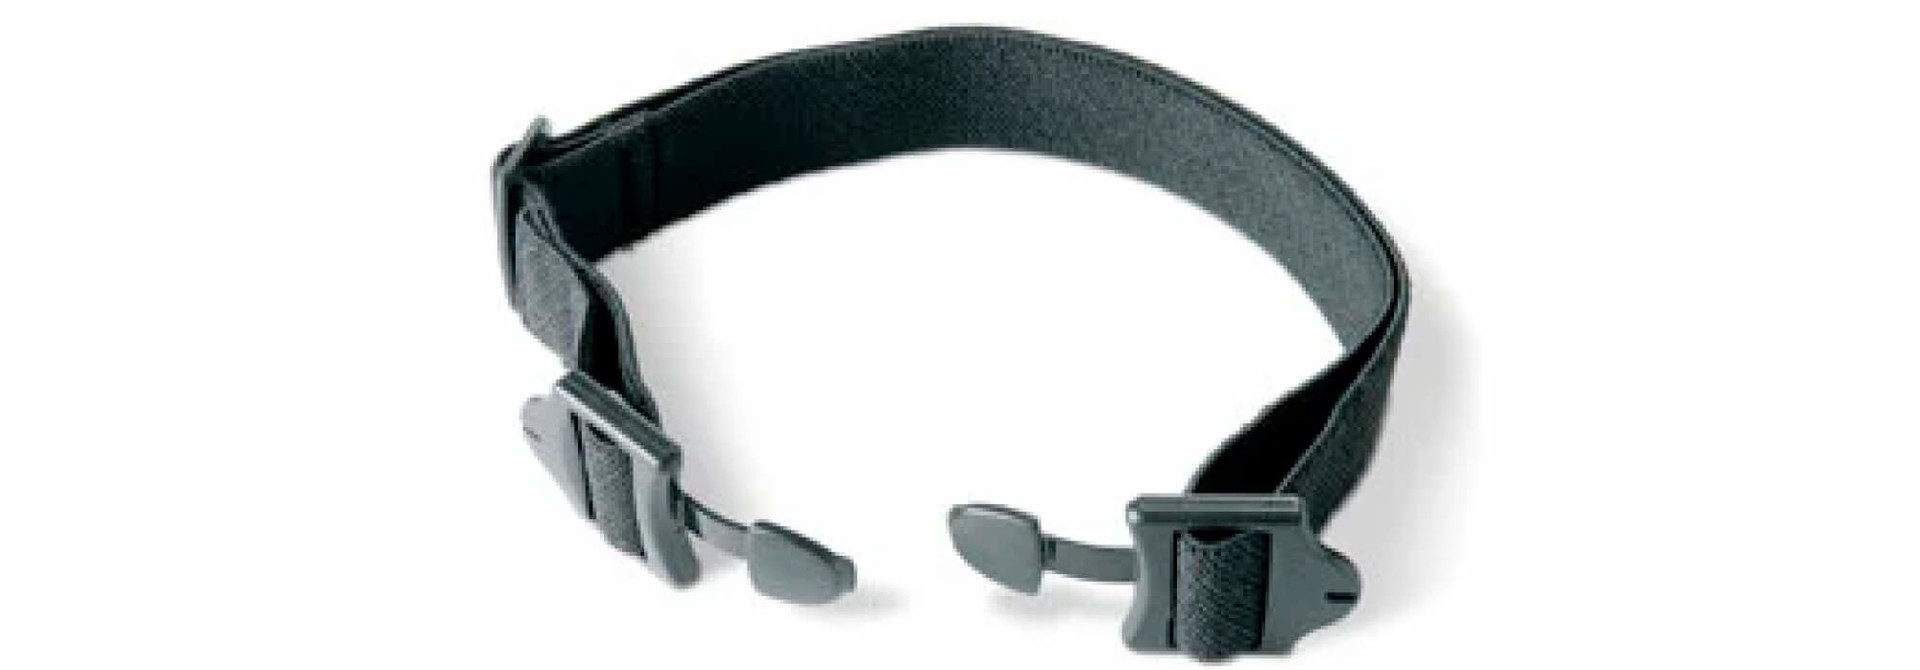 Standard HRM Replacement Elastic Strap (Regular Size)